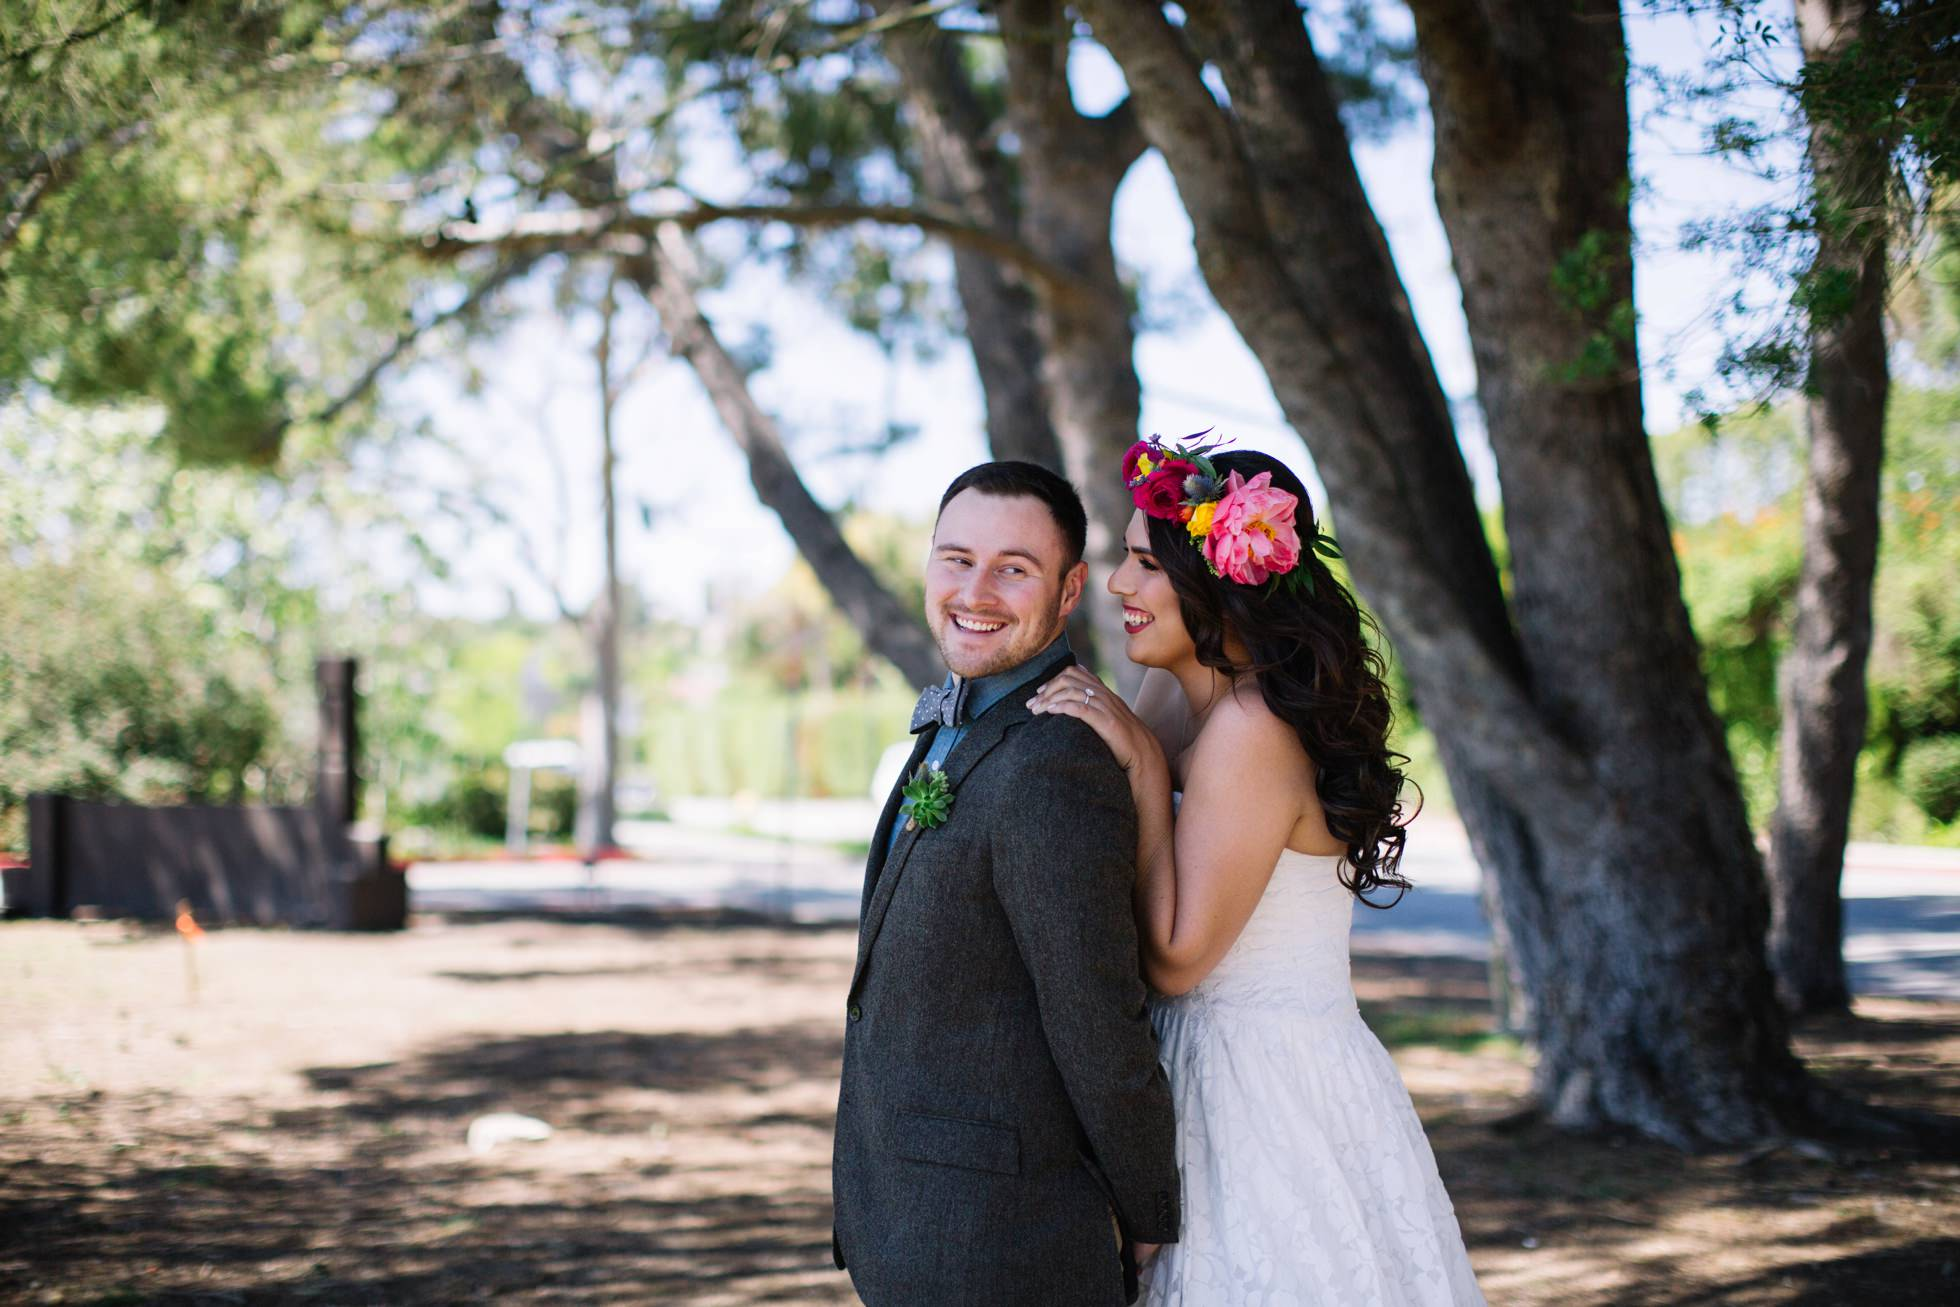 Palos Verdes Southern California Destination Wedding | brittneyraine.com 0015